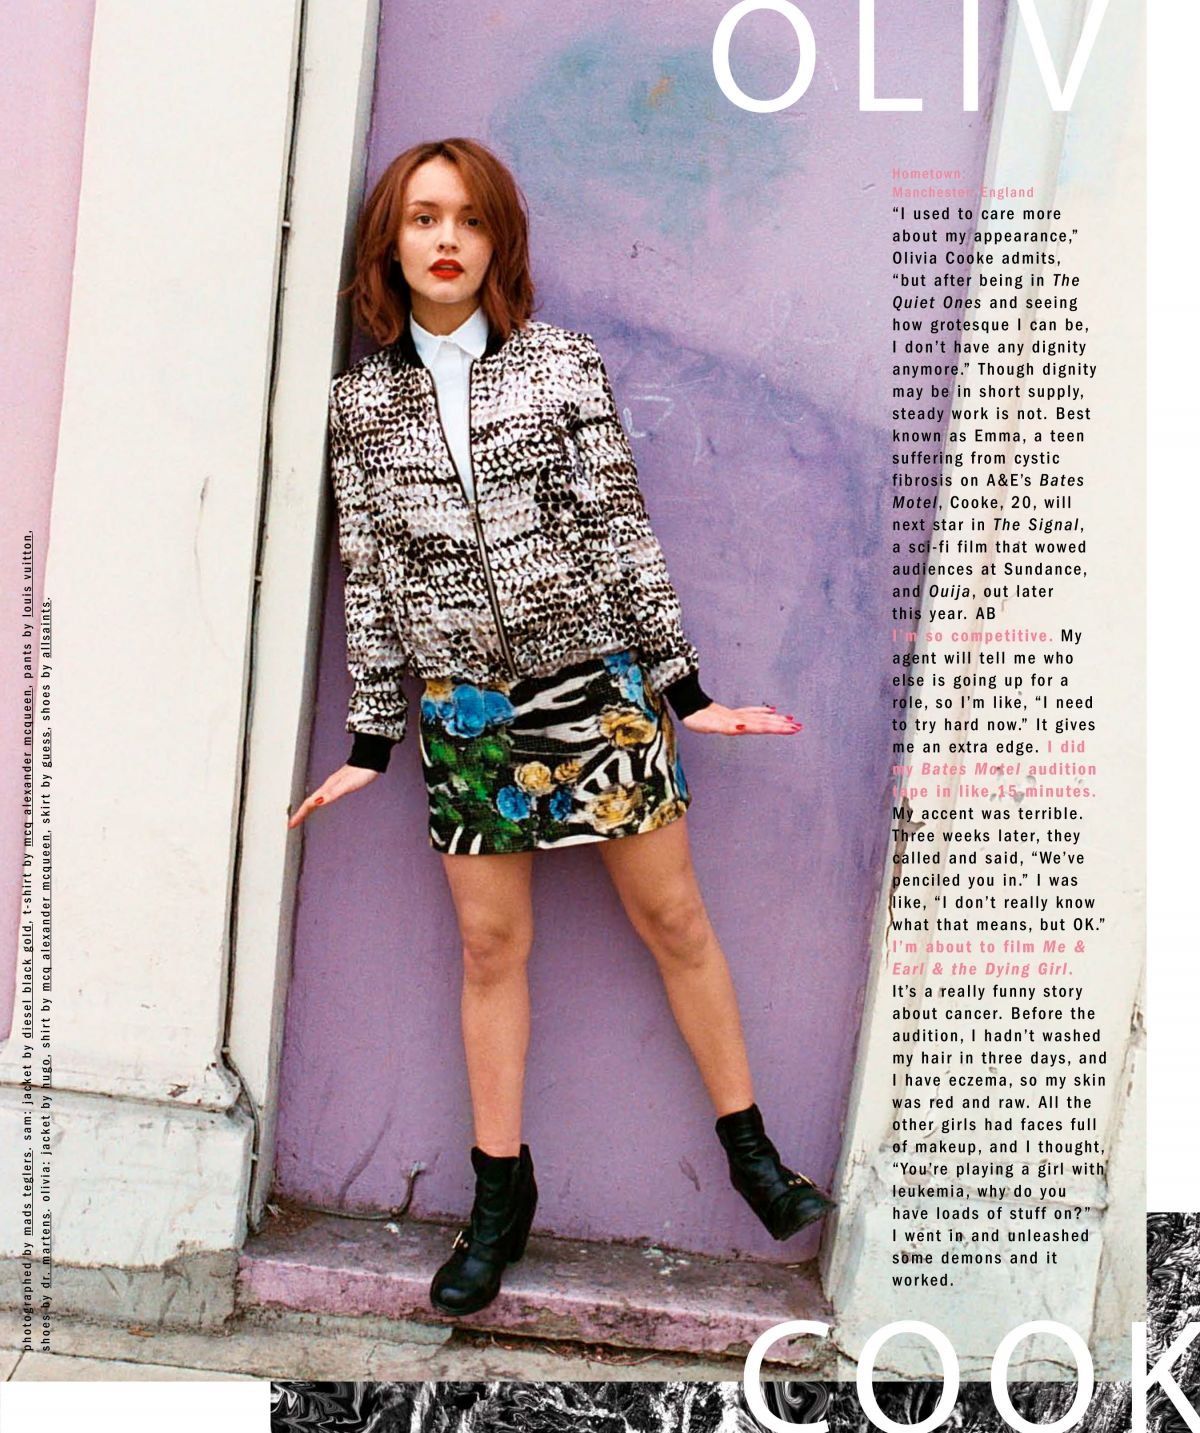 OLIVIA COOKE in Nylon Magazine, May 2014 Issue